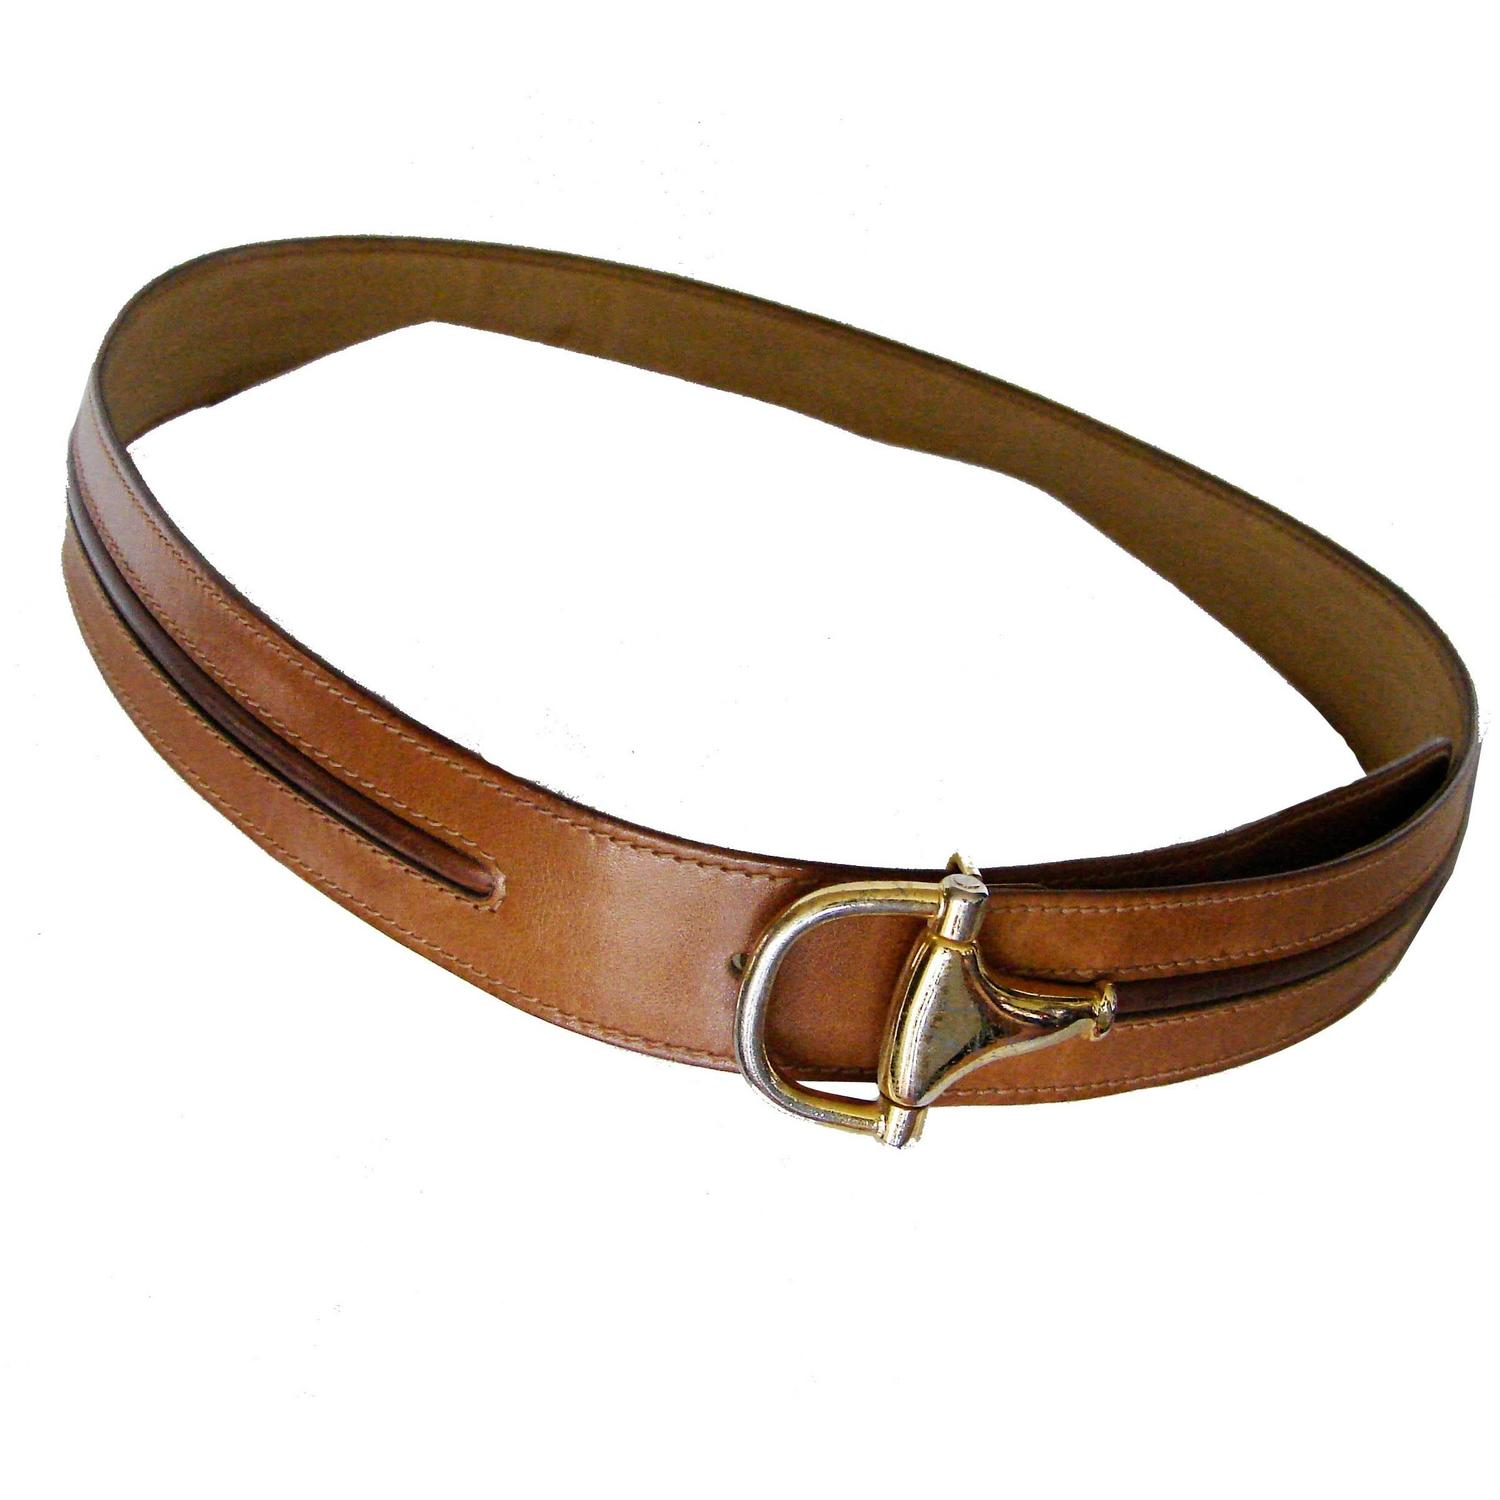 Gucci Tan and Brown Leather Belt with Horse Bit Buckle ...